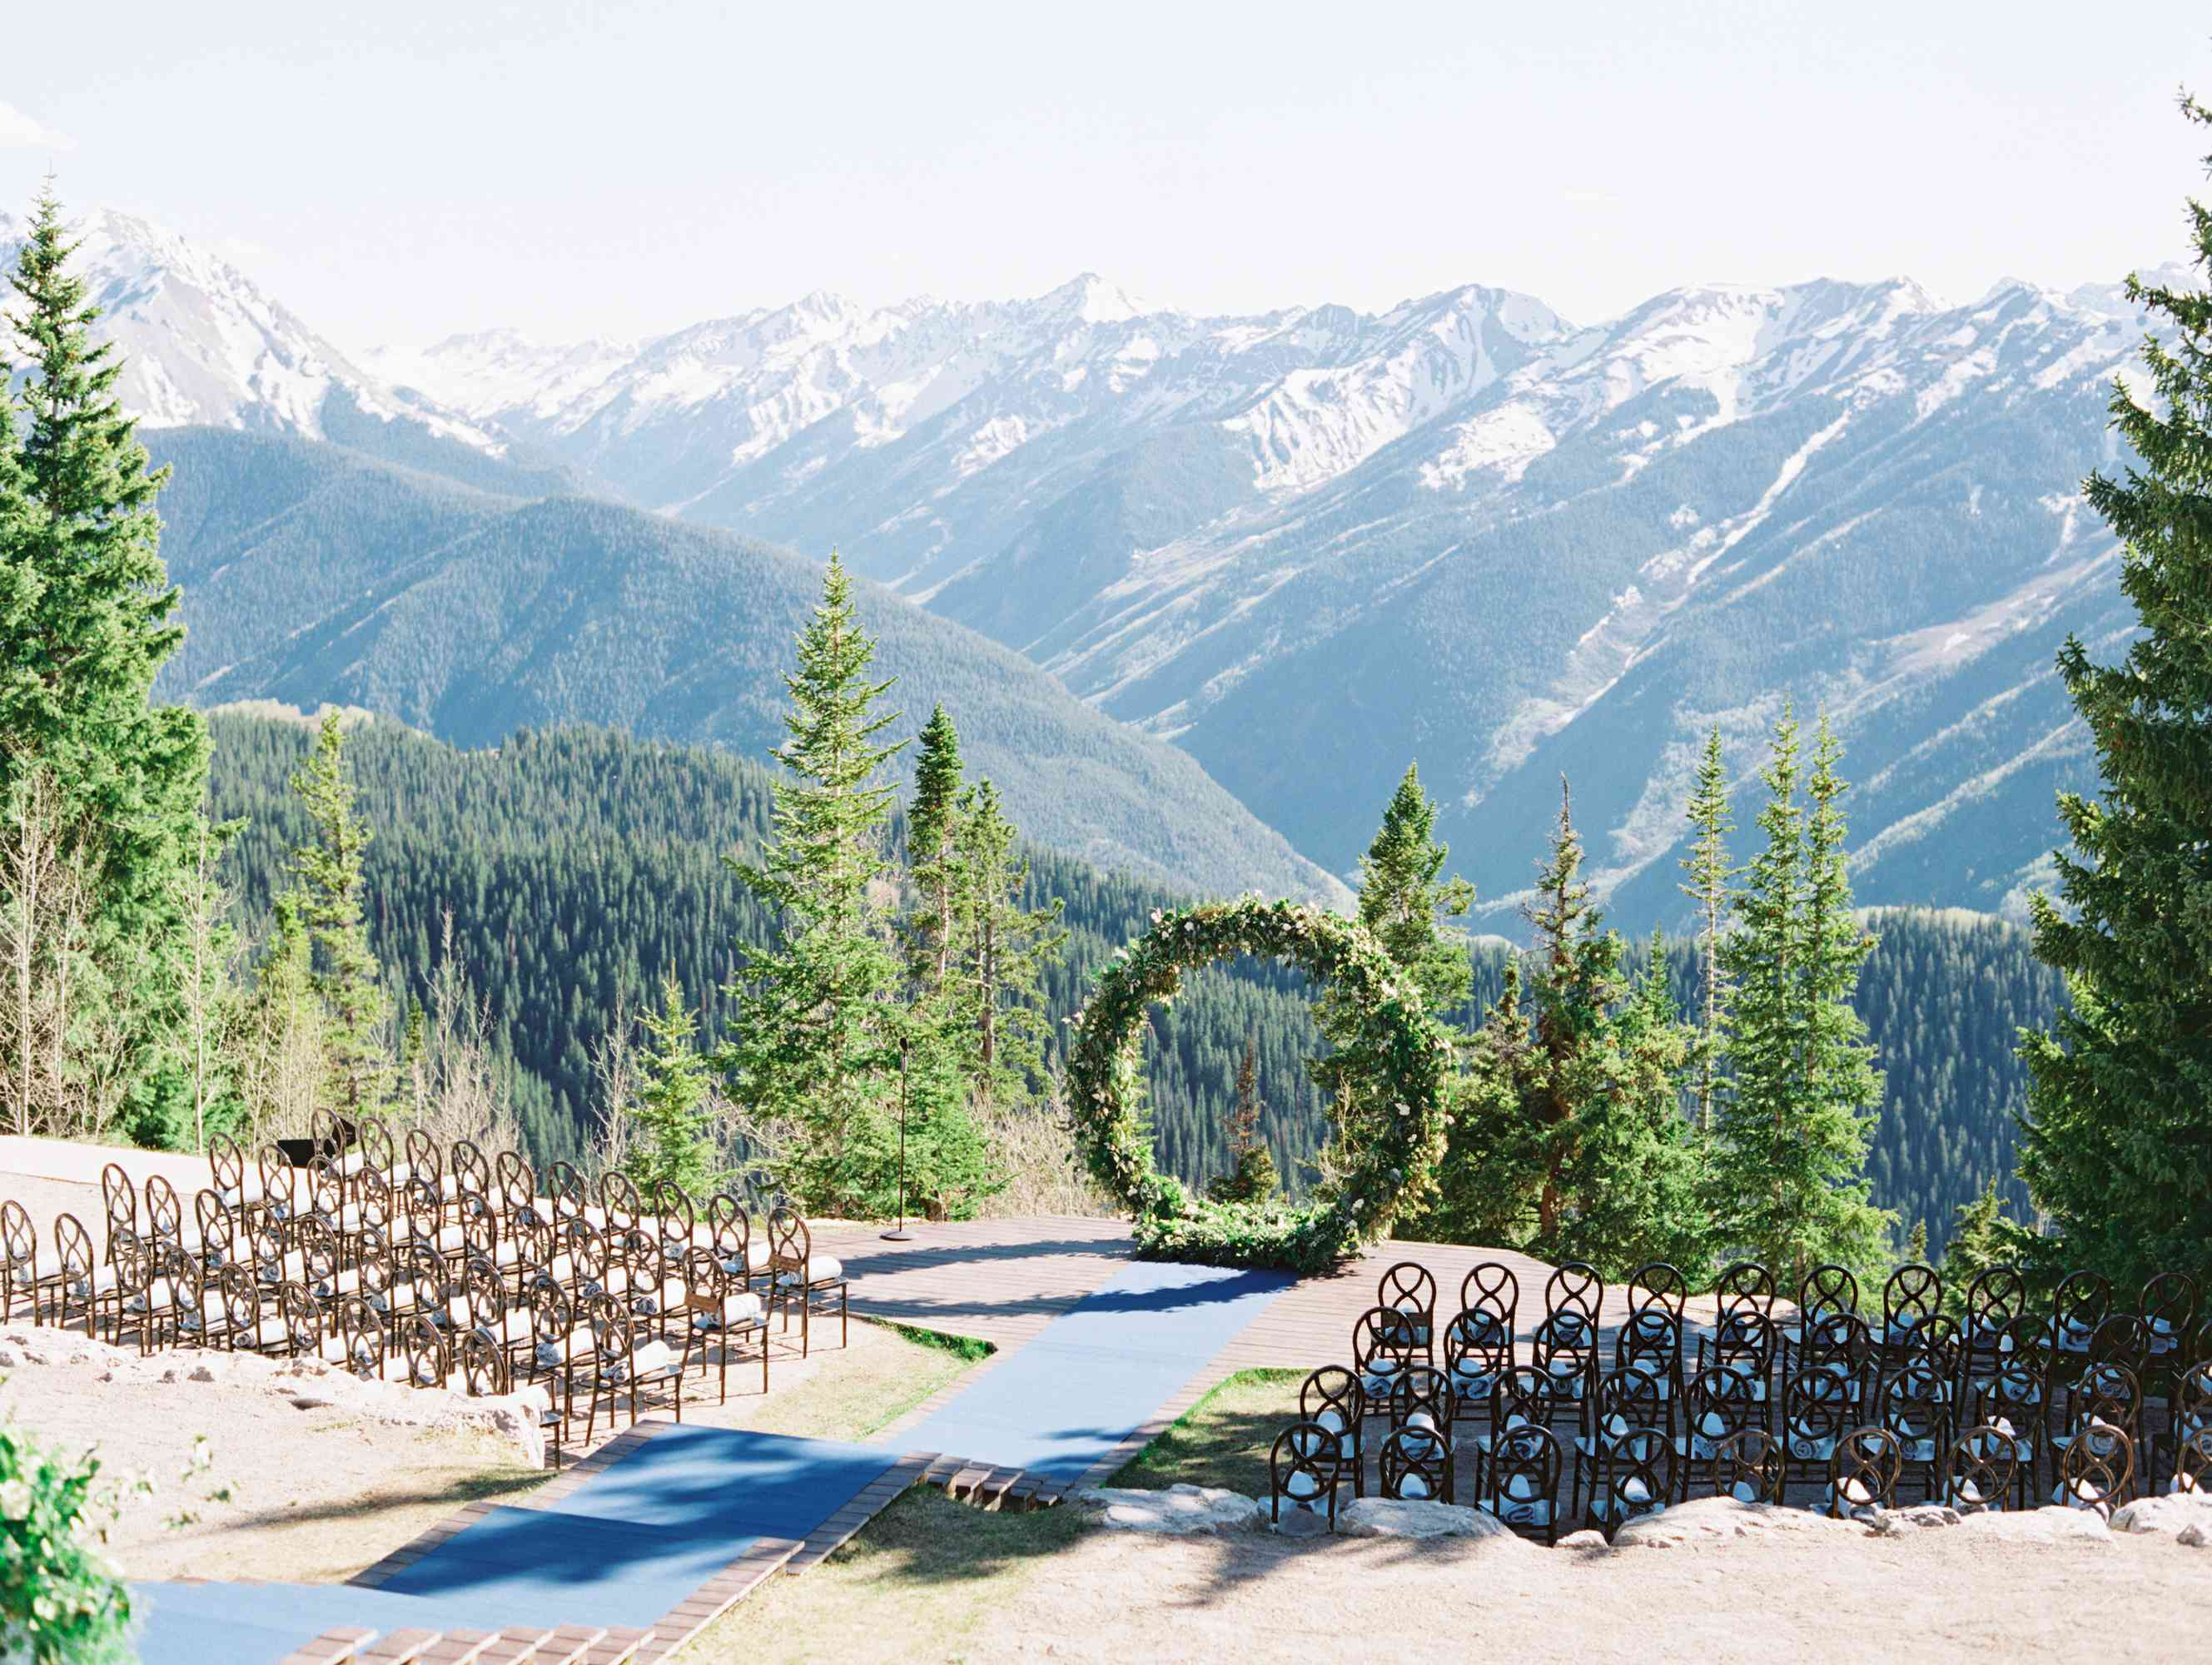 Ceremony in front of mountain view with stairs leading to the circle arch of greenery